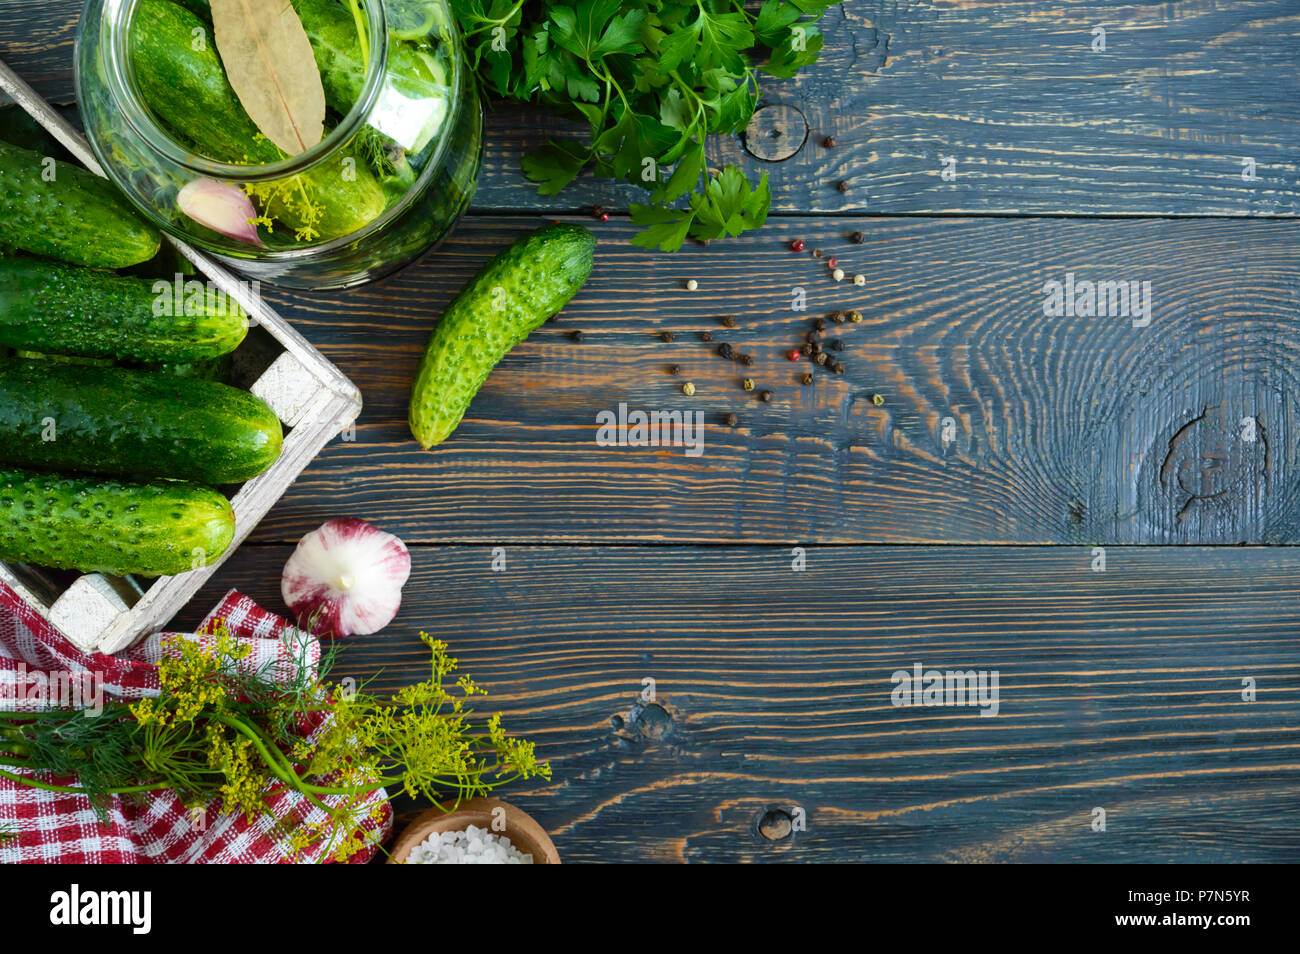 Pickles. Delicious pickled cucumbers in a jar, fresh harvest in a wooden box, spices, herbs on a table. Preparation of cucumbers for pickles. Top view - Stock Image